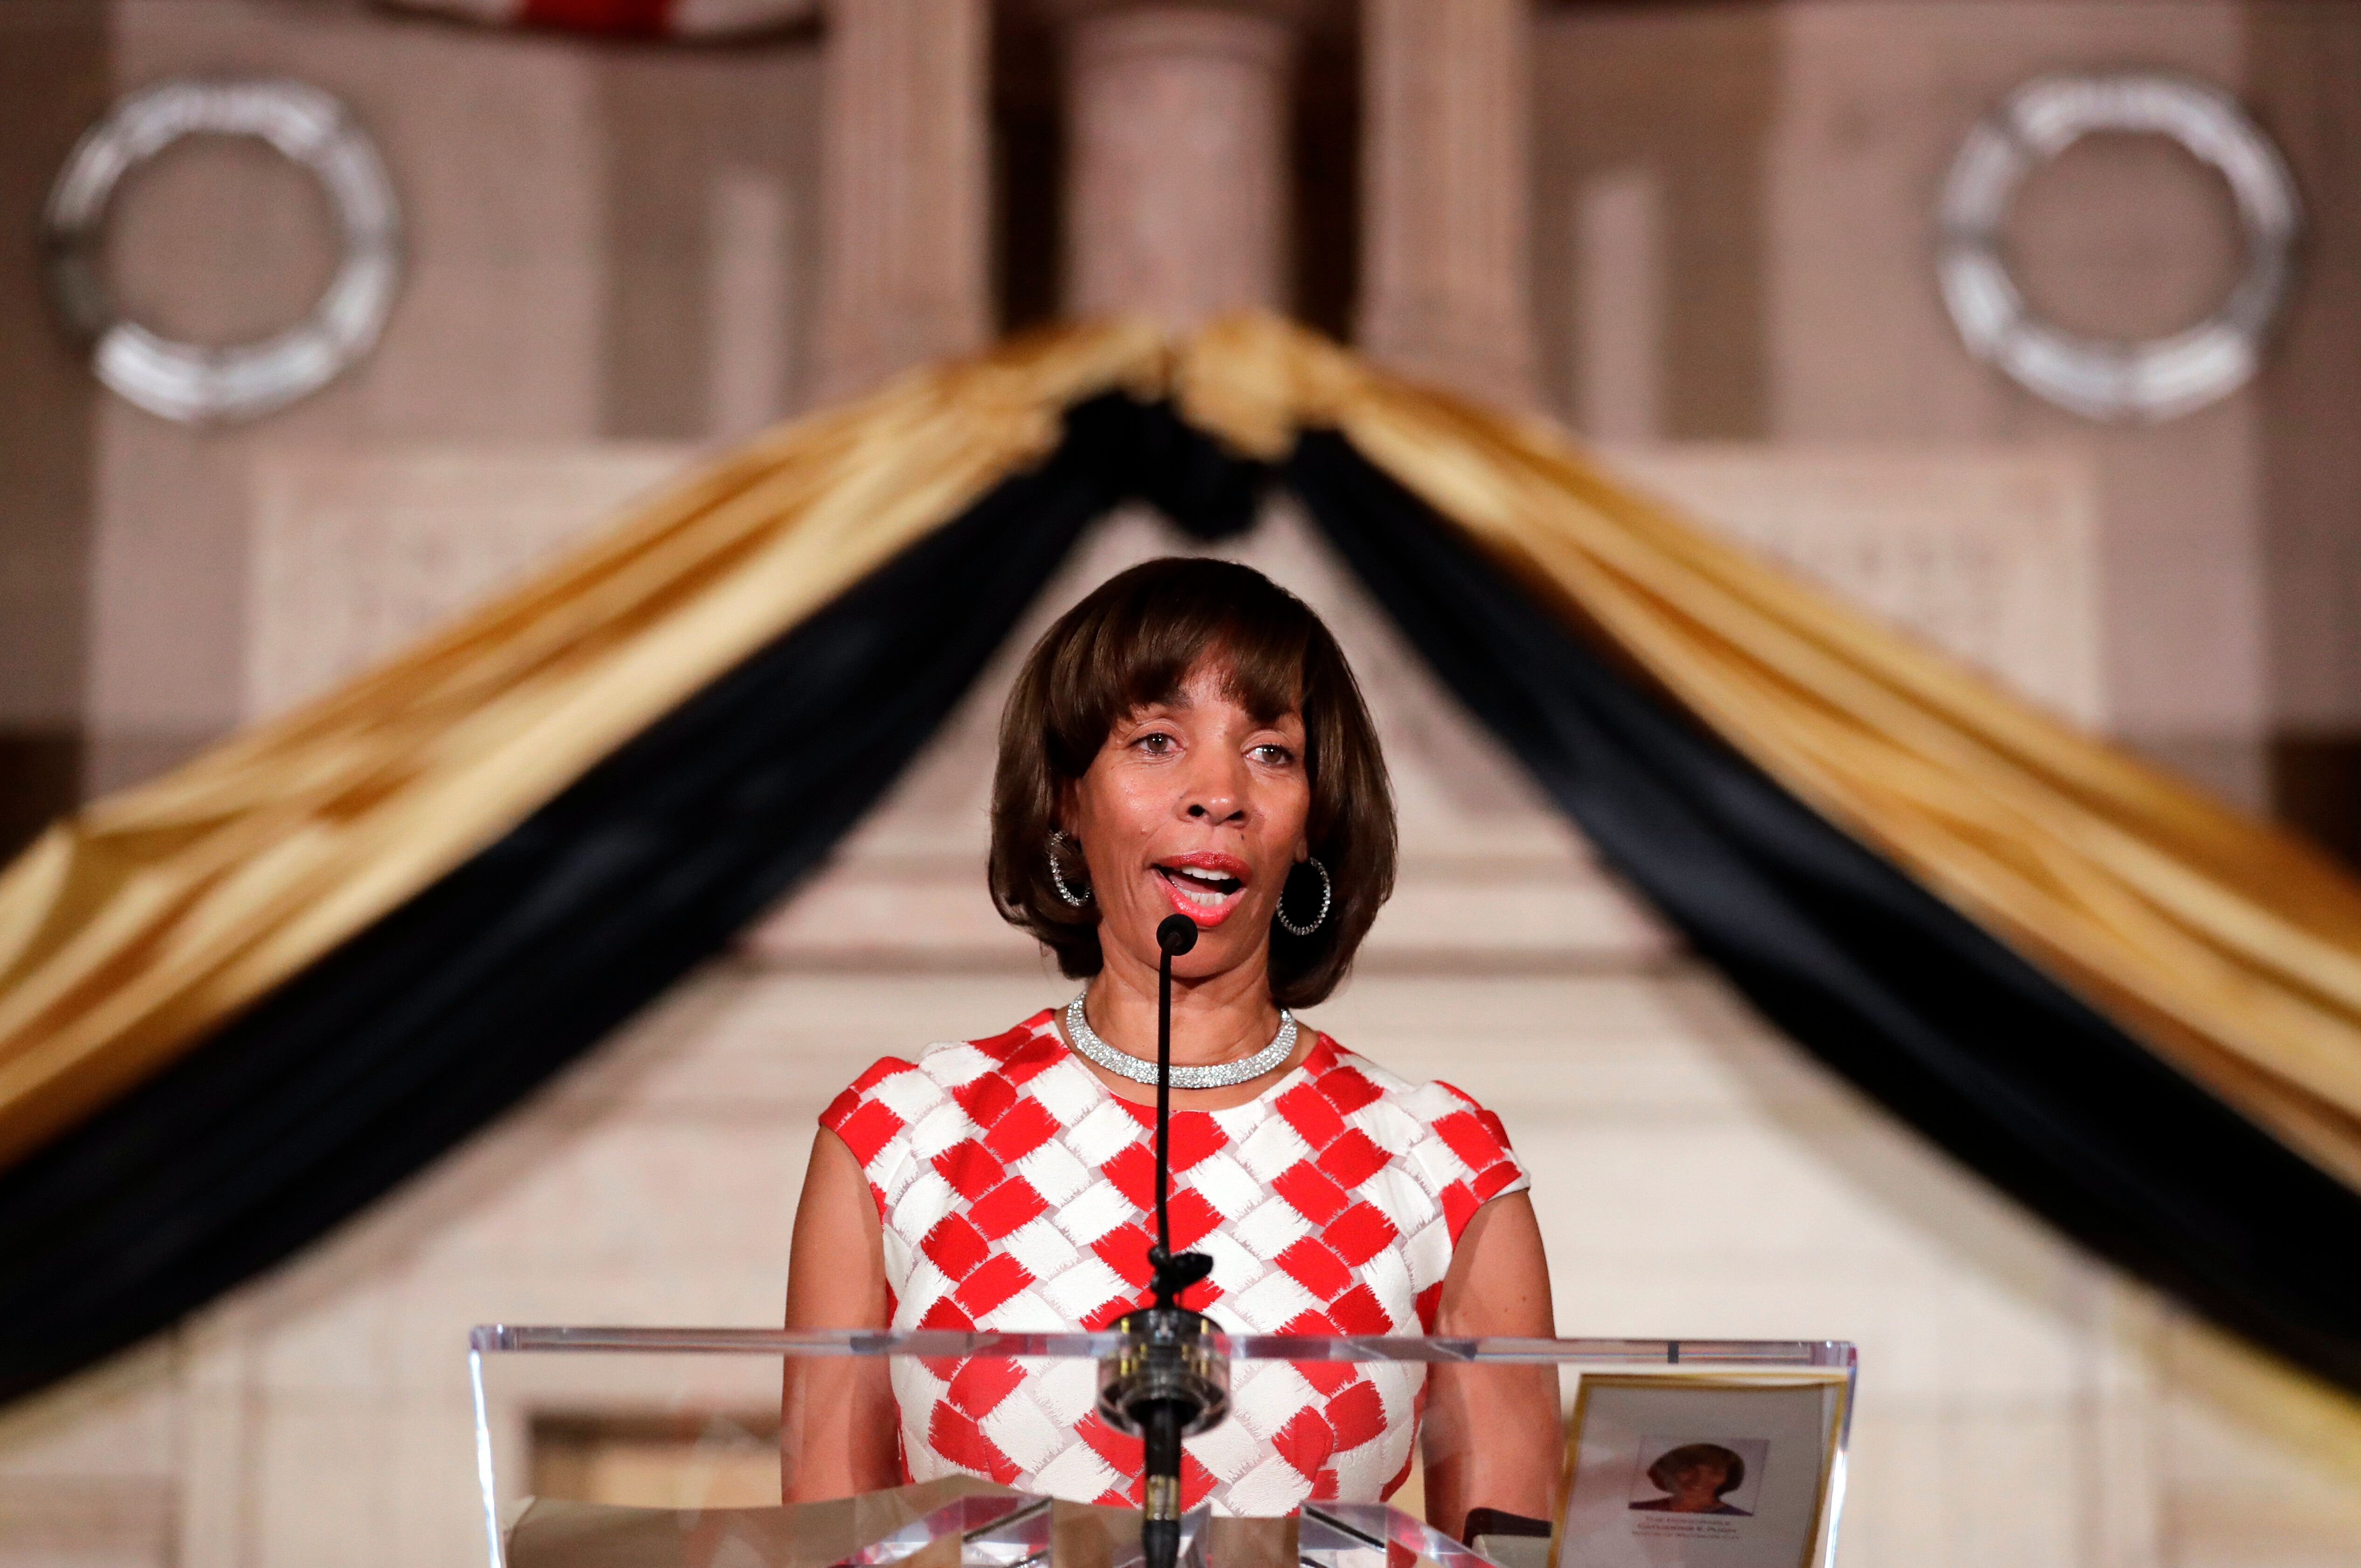 Baltimore Mayor Catherine Pugh delivers an address during her inauguration ceremony inside the War Memorial Building in Baltimore, Tuesday, Dec. 6, 2016. Pugh succeeds Stephanie Rawlings-Blake, who decided not run for re-election following the unrest in response to Freddie Gray's death. (AP Photo/Patrick Semansky)